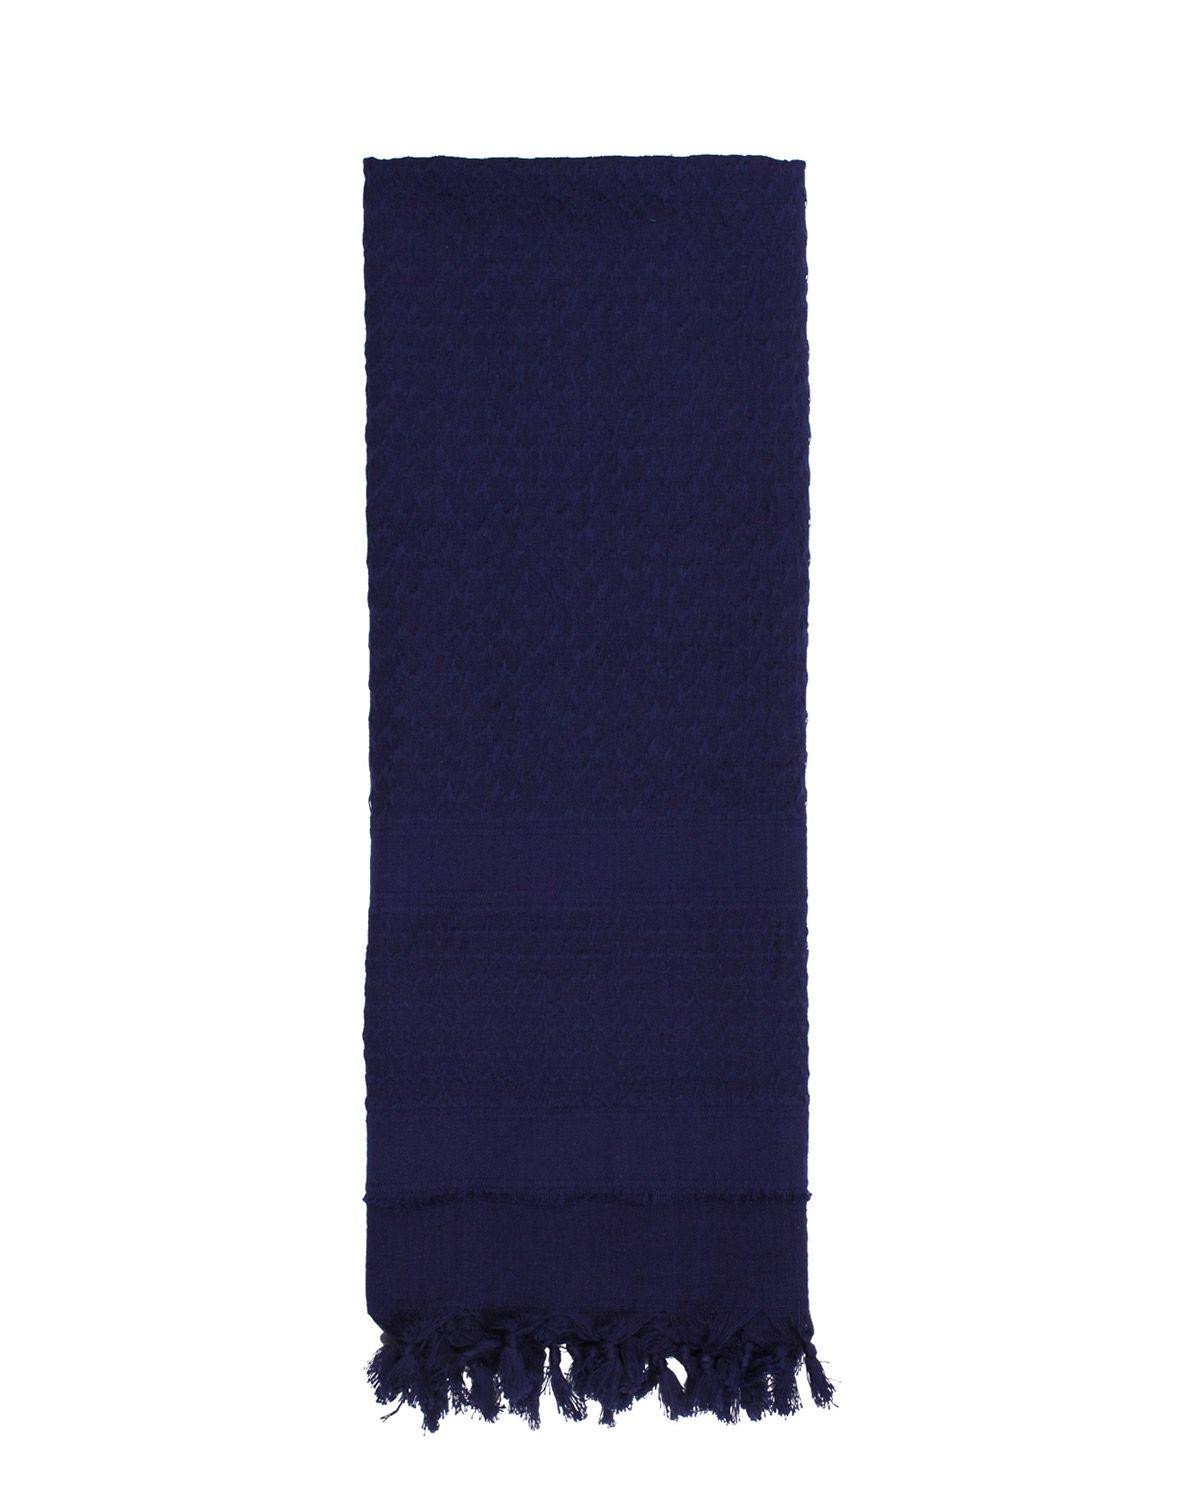 Image of   Rothco Deluxe Partisan Tørklæde Ensfarvet (Navy, One Size)